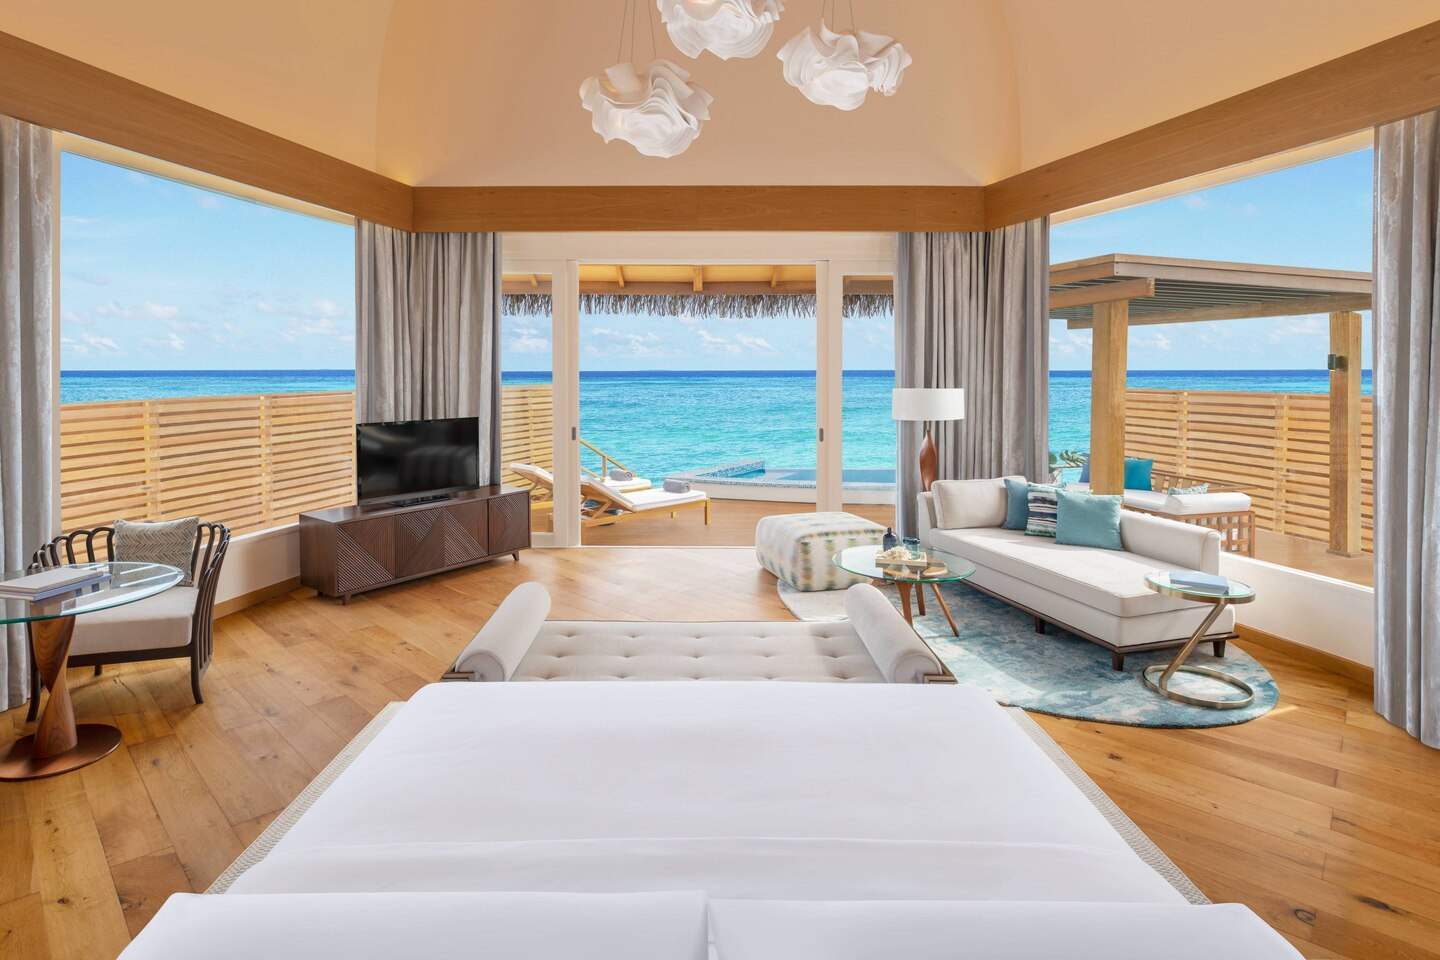 JW Marriott Maldives Bedroom